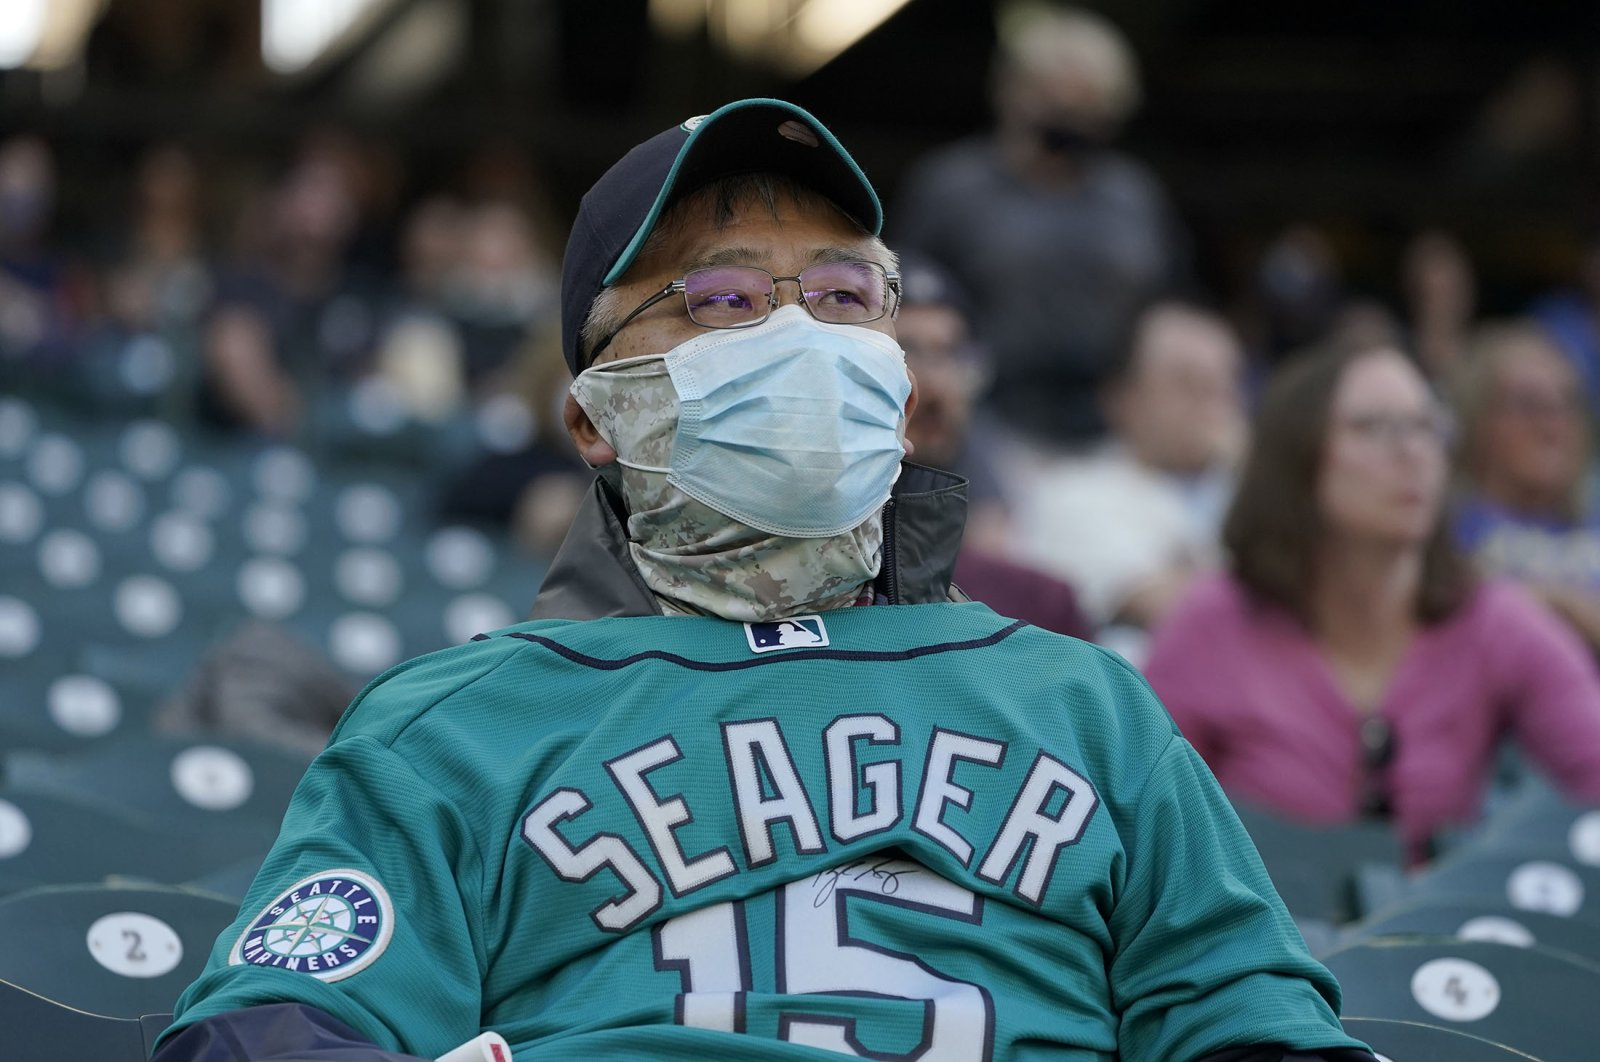 A fan wears two masks and a backward Kyle Seager jersey as he watches a baseball game between the Mariners and the Houston Astros, in Seattle, Washington, April 17, 2021. (AP Photo)